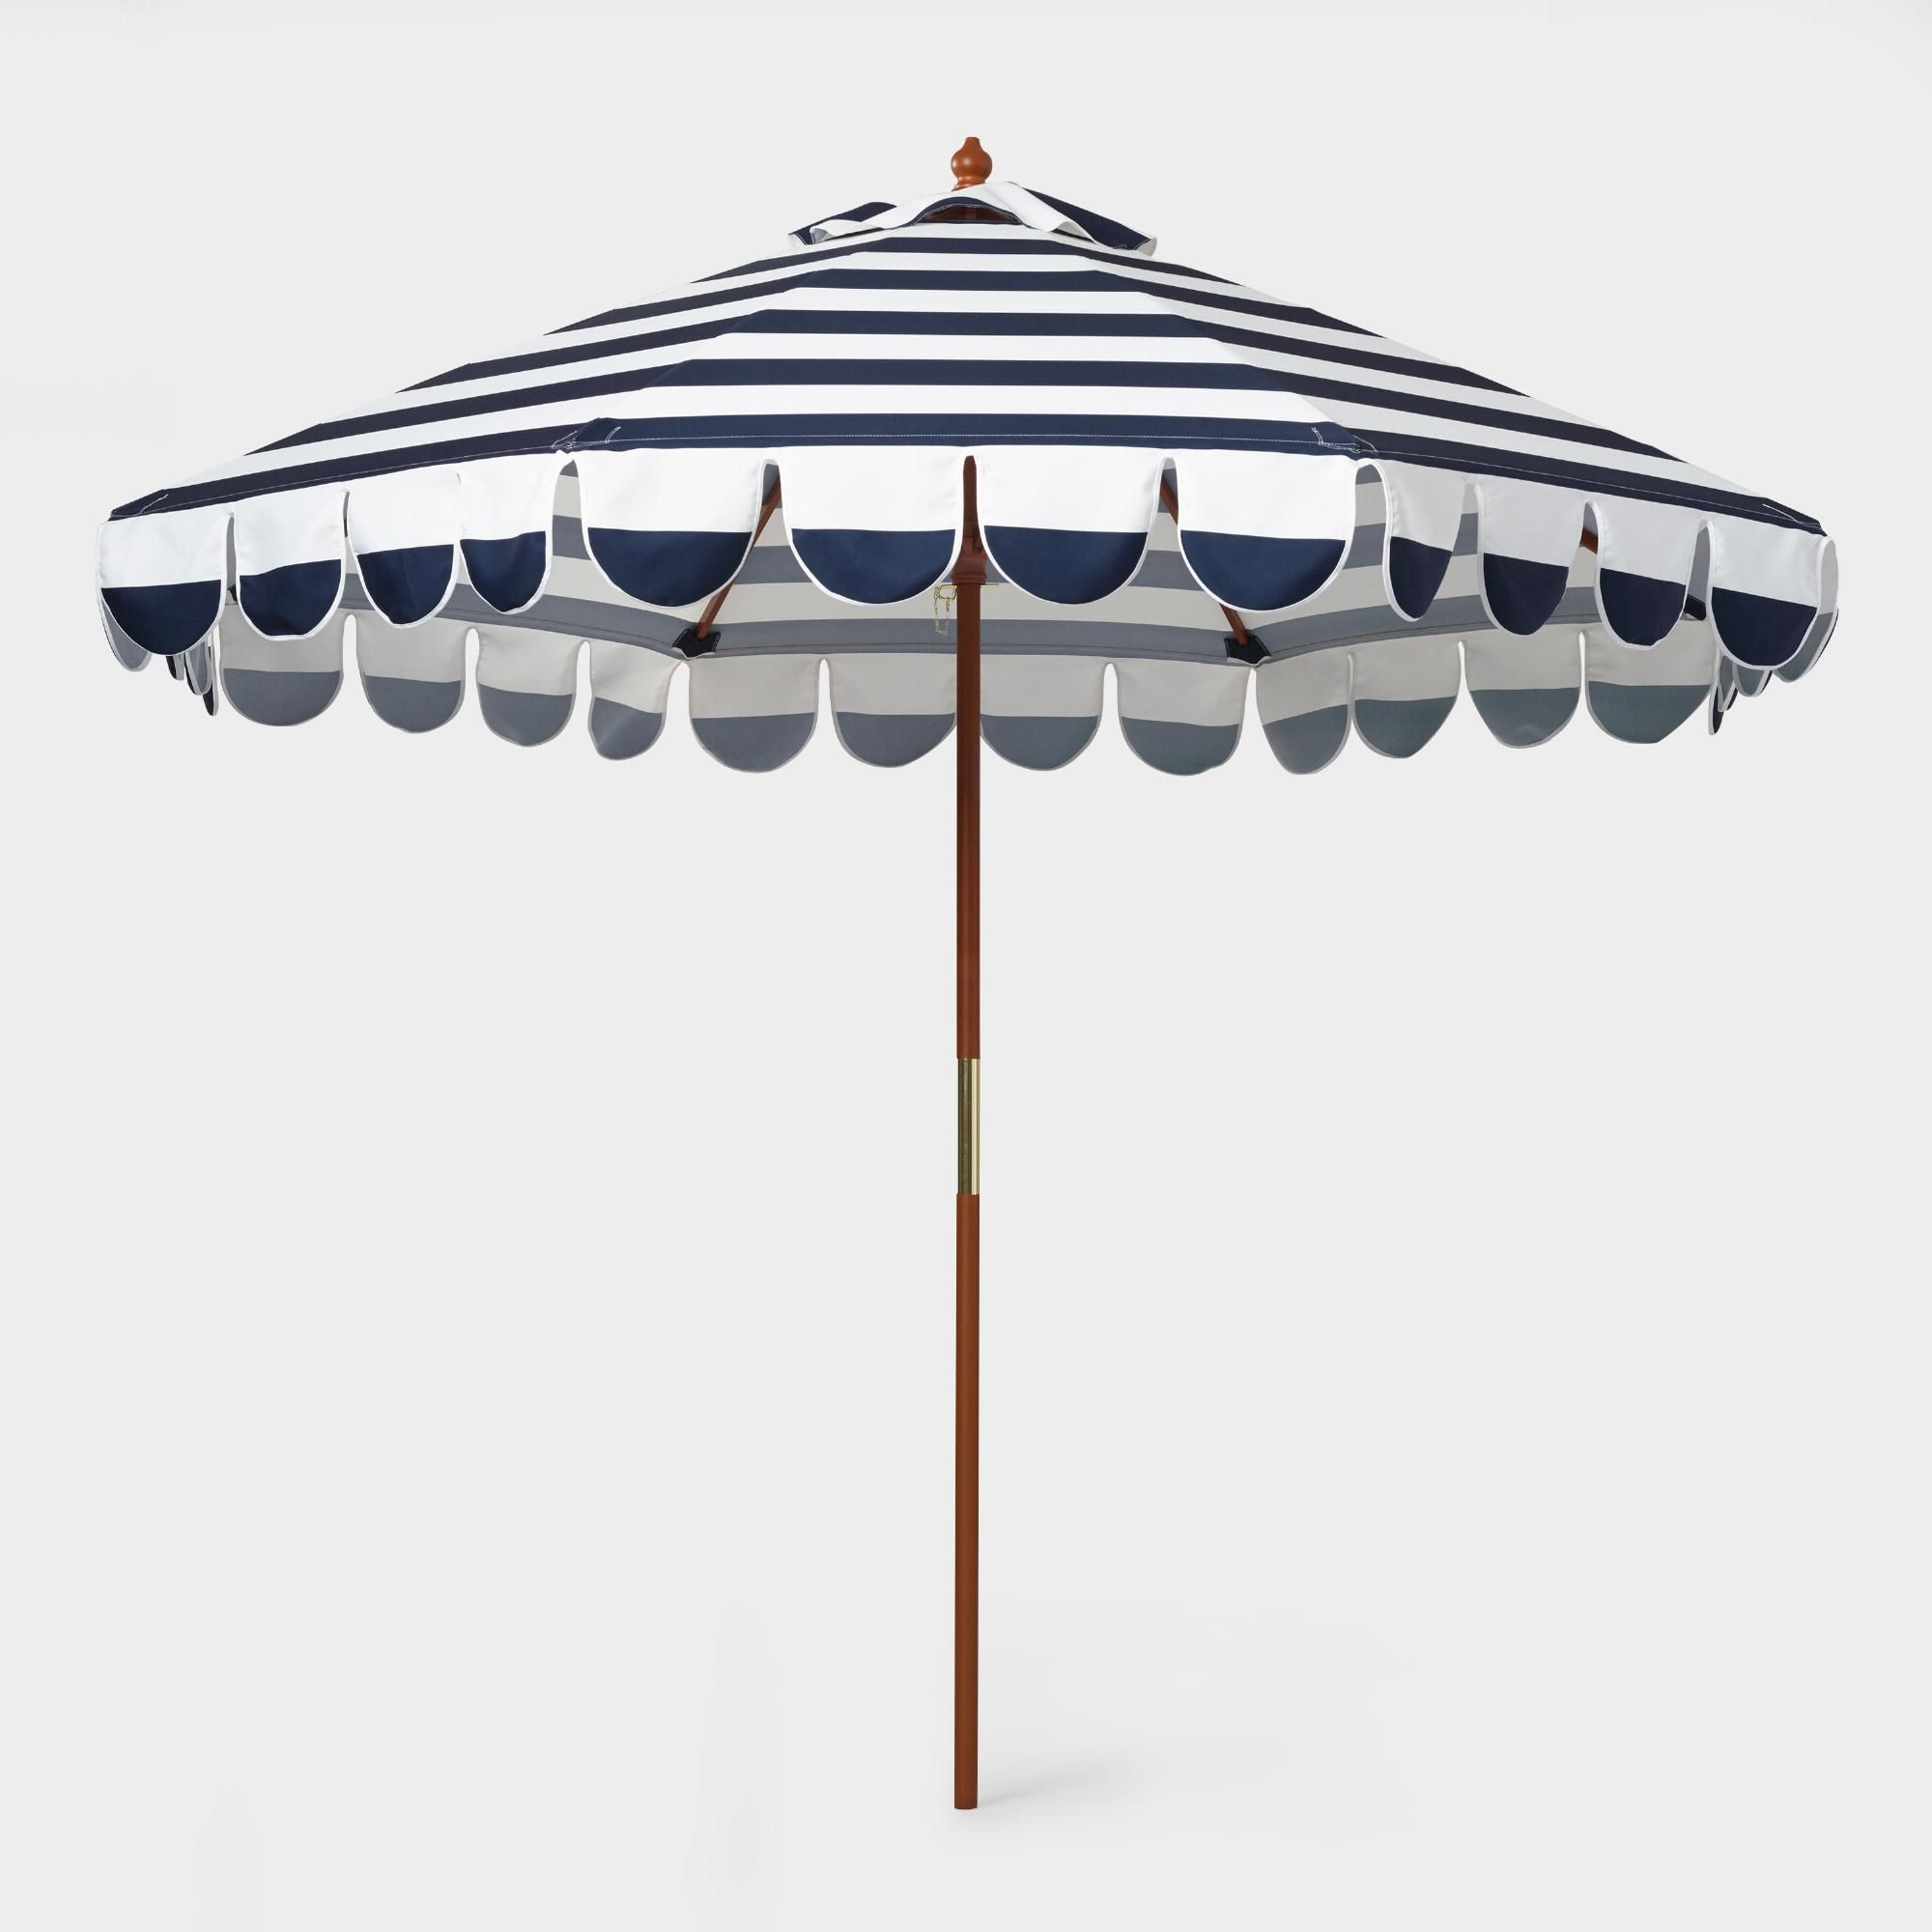 Best And Newest Lambeth Market Umbrellas In Featuring A Classic Blue And White Striped Design With Scallop Trim (Gallery 13 of 20)